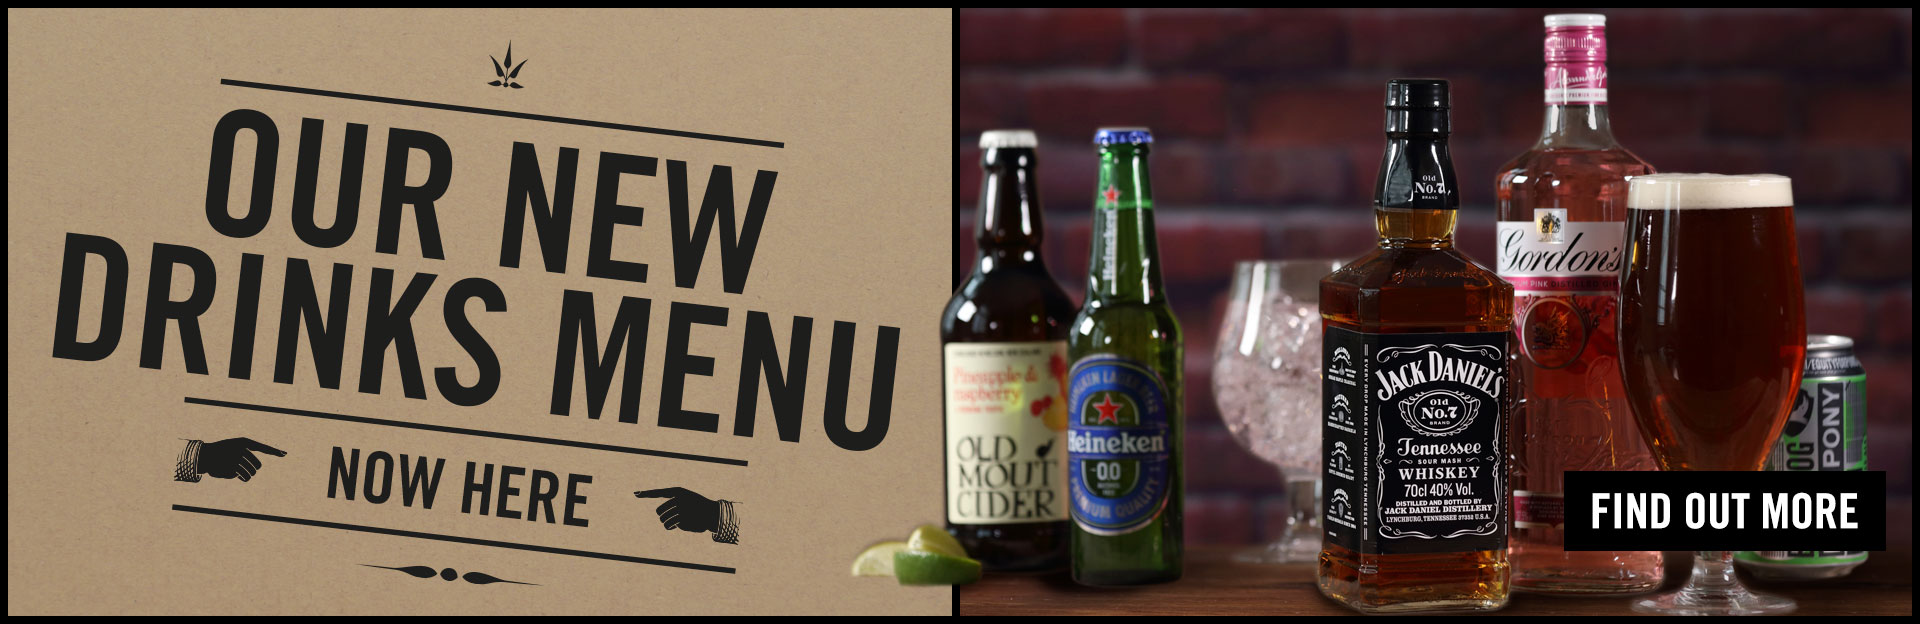 New Drinks Menu Coming Soon at The Black Bull